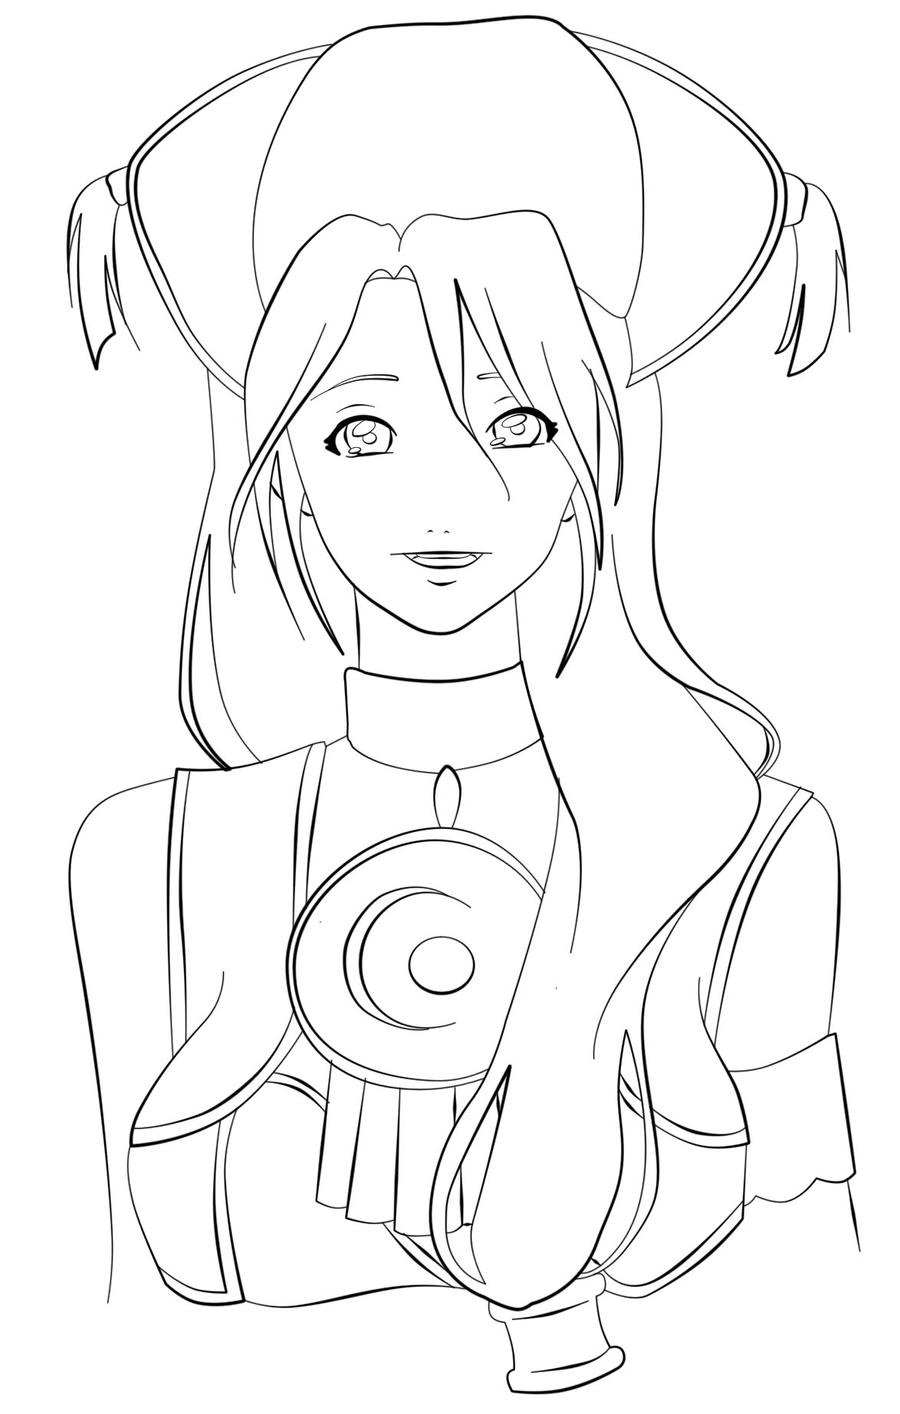 sin coloring pages - photo#27